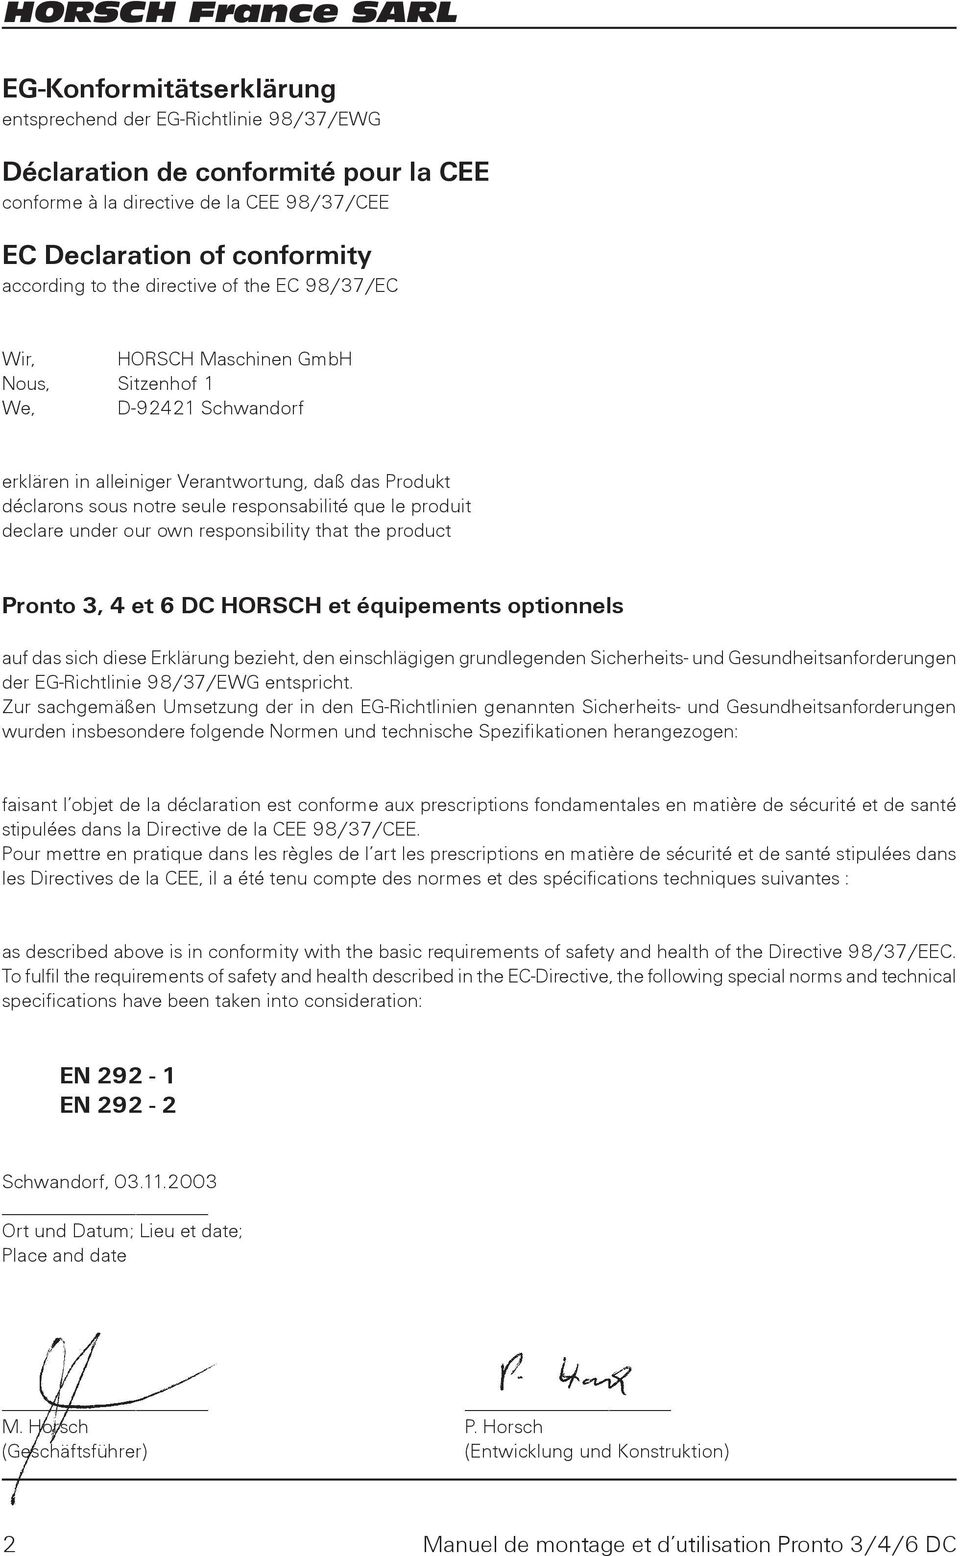 produit declare under our own responsibility that the product Pronto 3, 4 et 6 DC HORSCH et équipements optionnels auf das sich diese Erklärung bezieht, den einschlägigen grundlegenden Sicherheits-